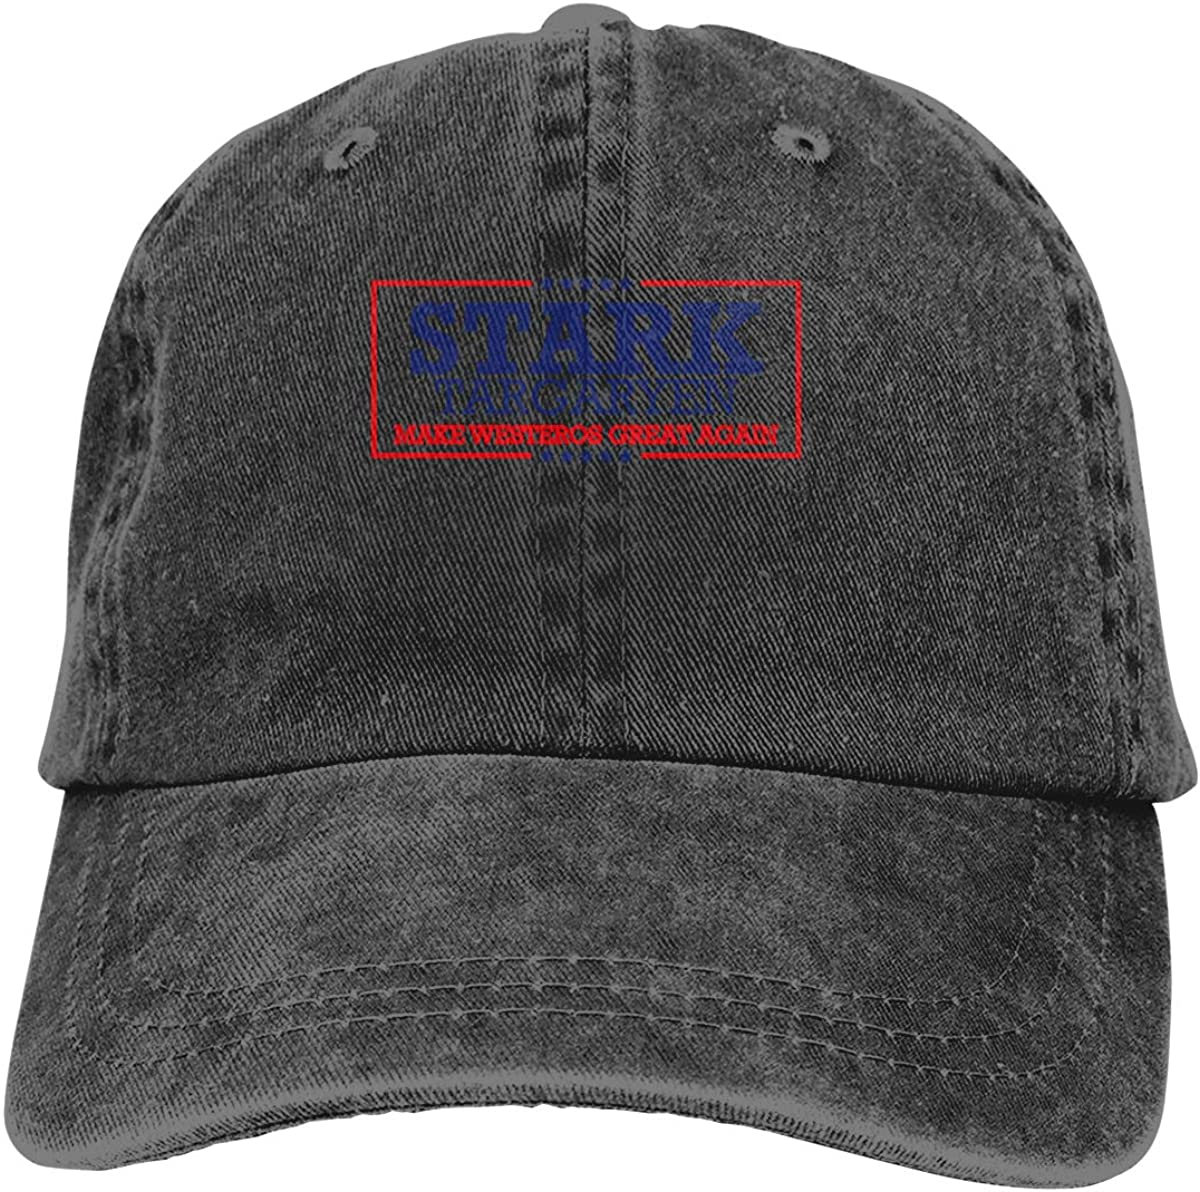 Stark Targaryen Presidential Campaign Make Westeros Great Again 2020 Sports Cap for Mens and Womens